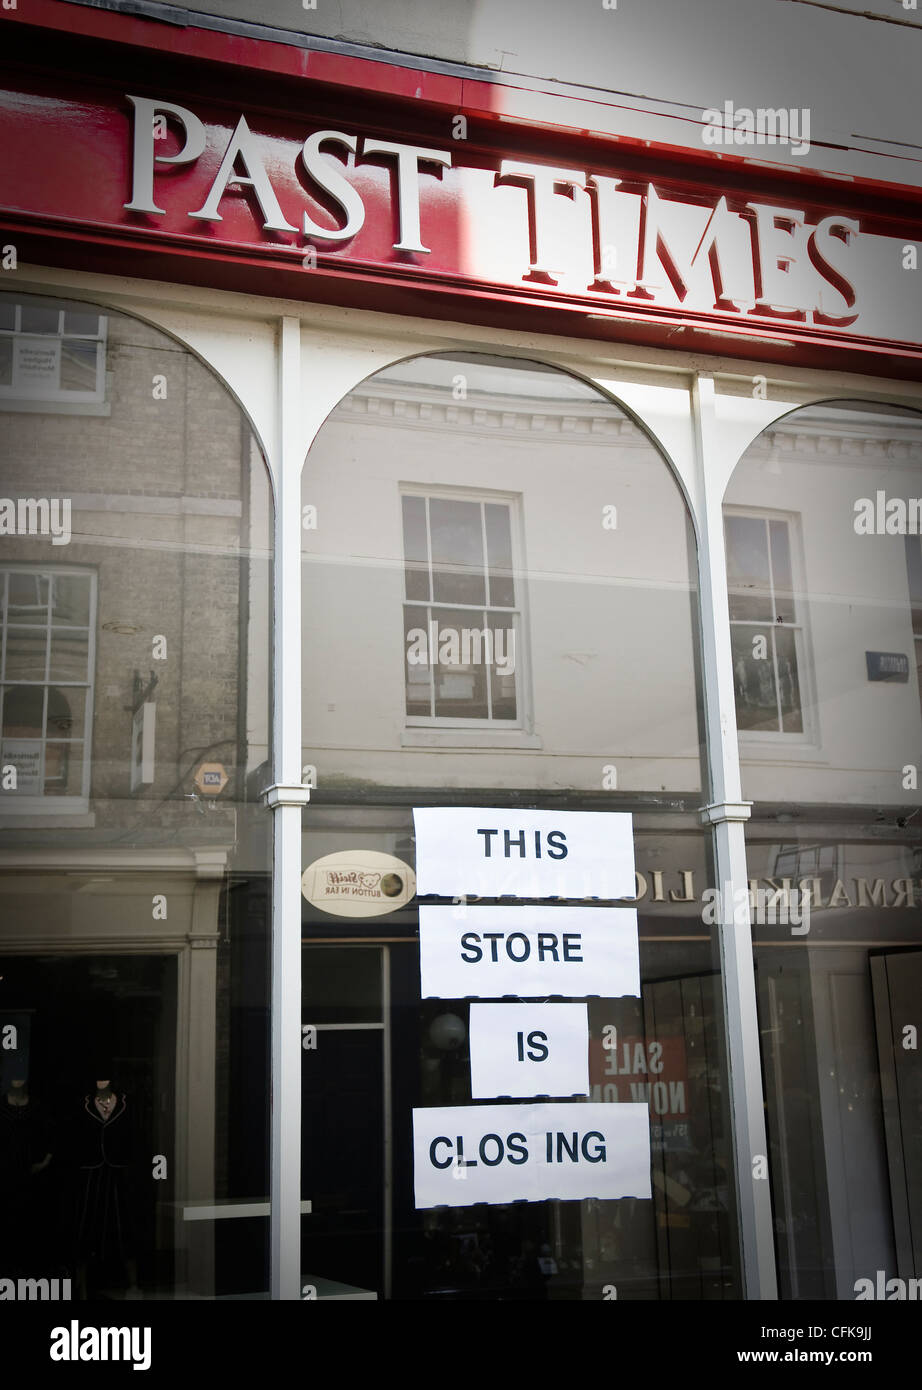 Past Times - this store is closing. Buttermarket, Ipswich, Suffolk, UK. Stock Photo